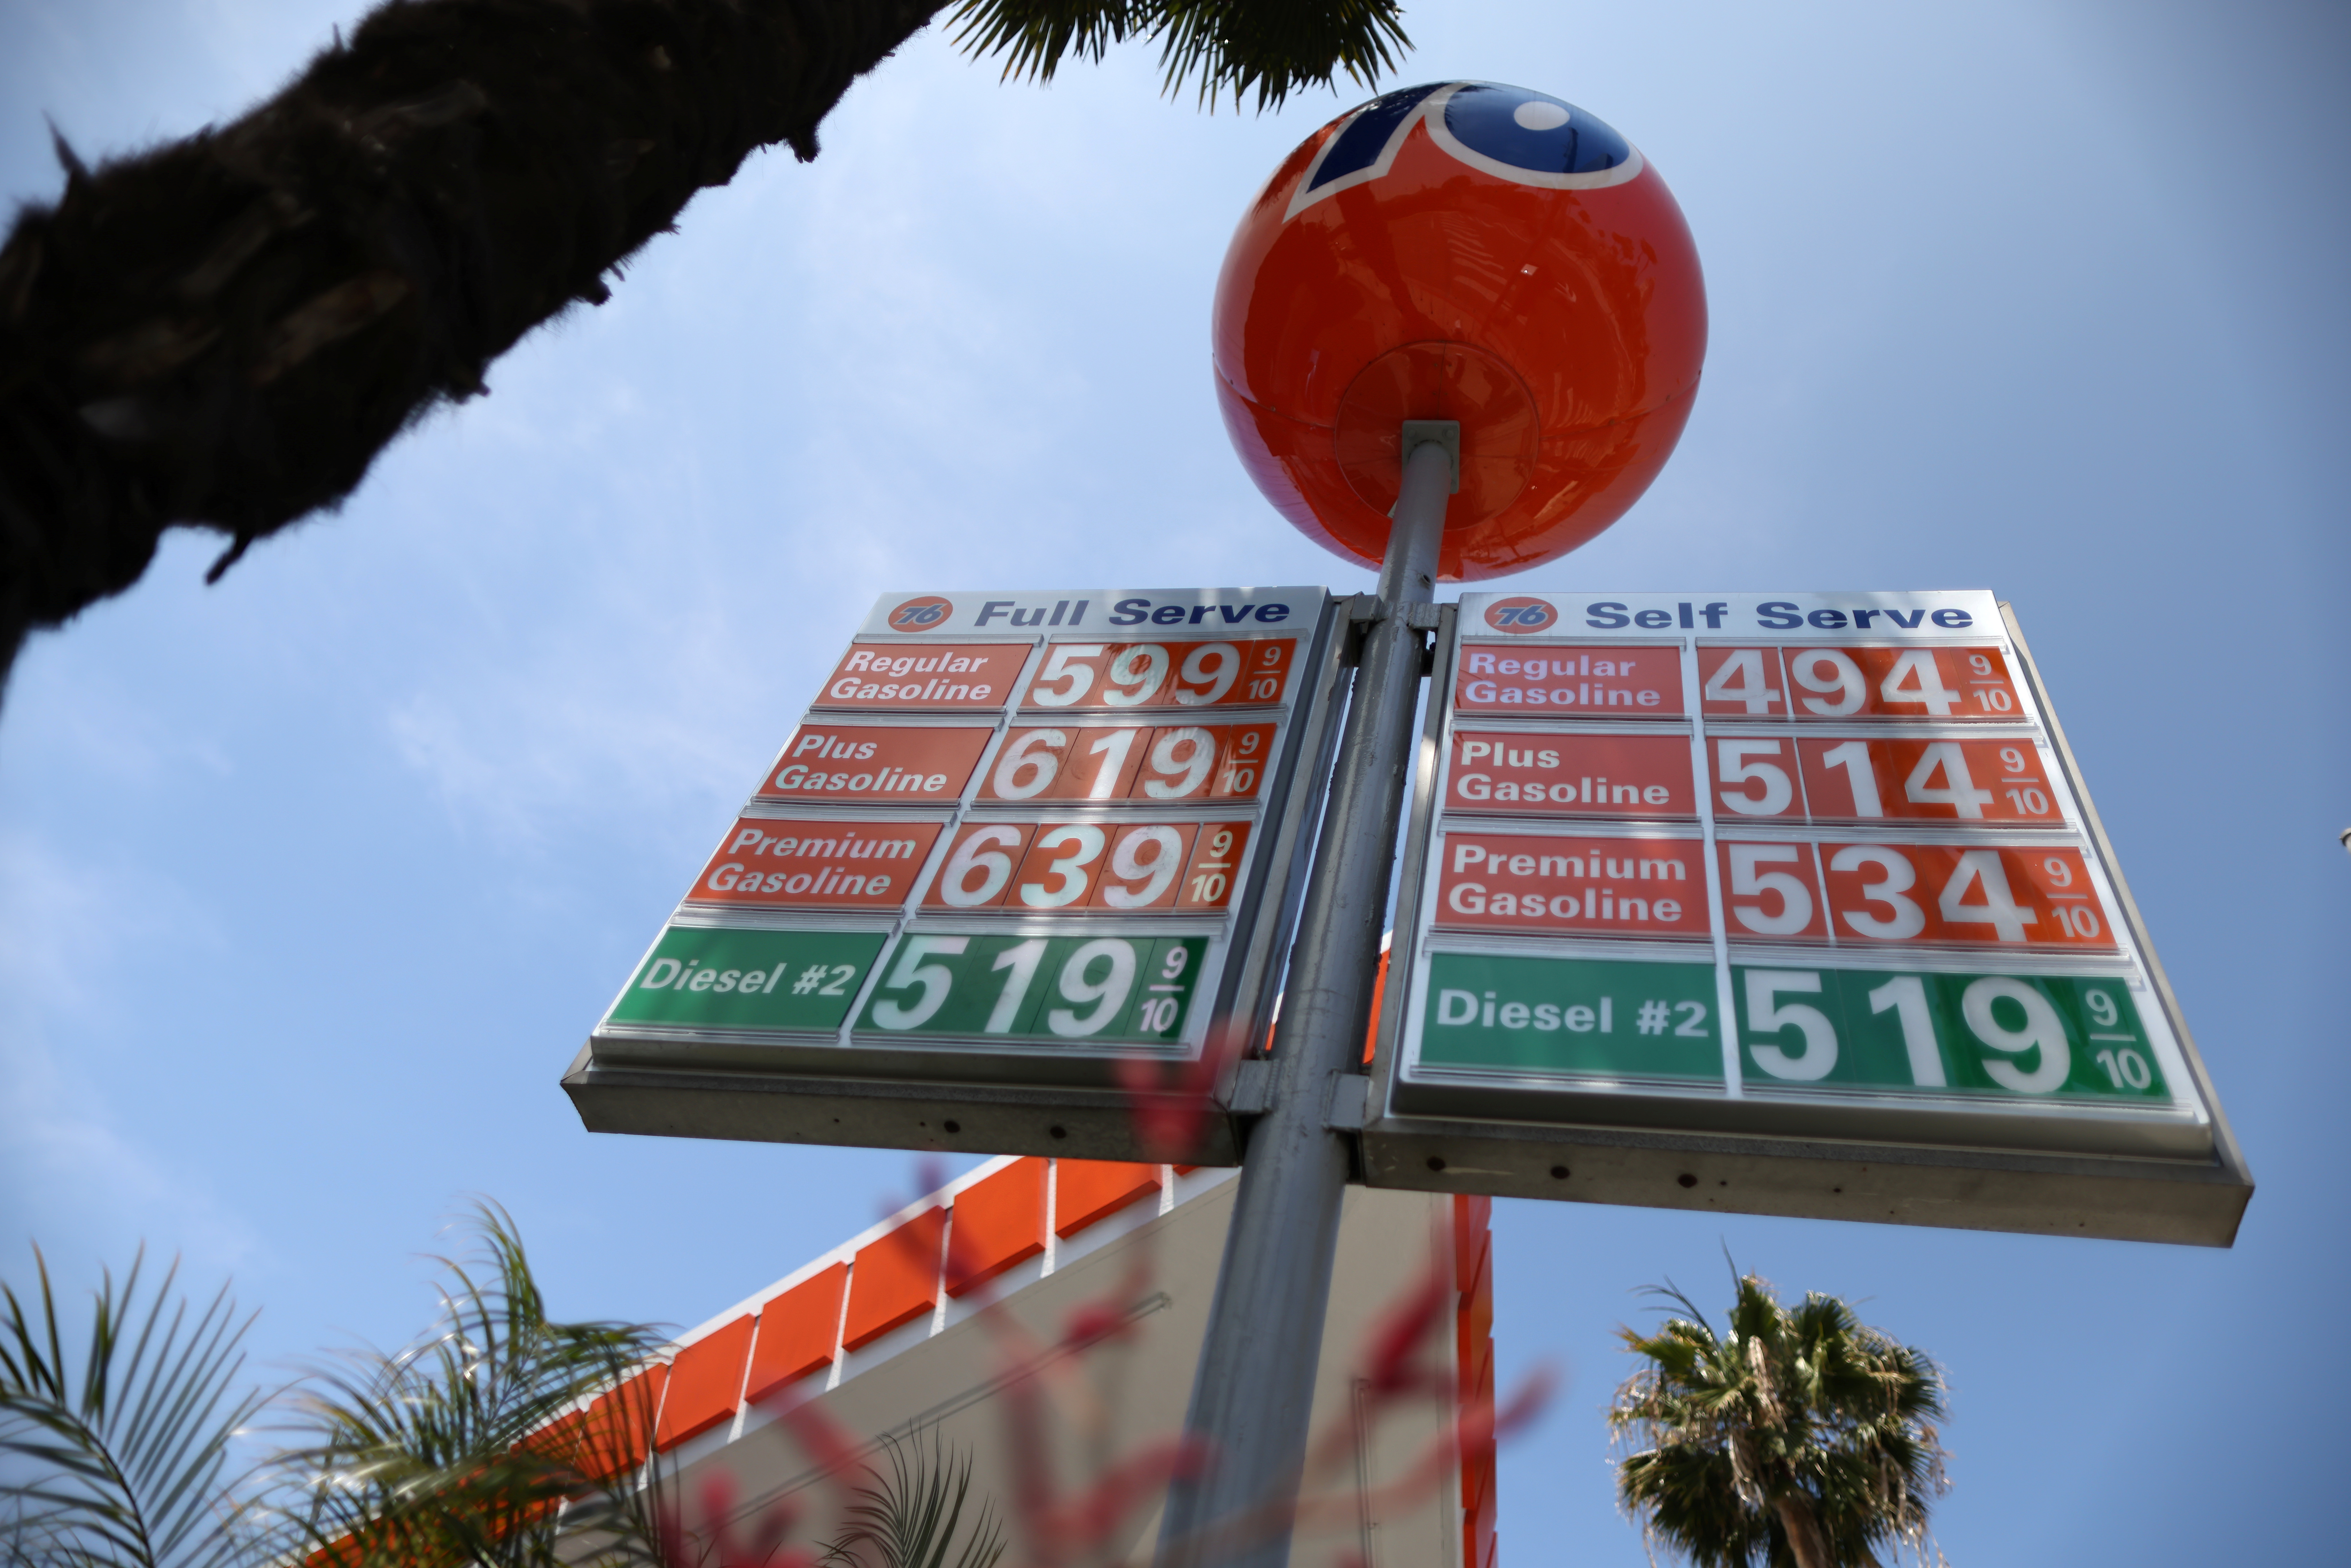 Gas prices are seen after U.S. consumer prices surged in April, with a measure of underlying inflation blowing past the Federal Reserve's 2% target, in Beverly Hills, California, U.S., June 2, 2021. REUTERS/Lucy Nicholson